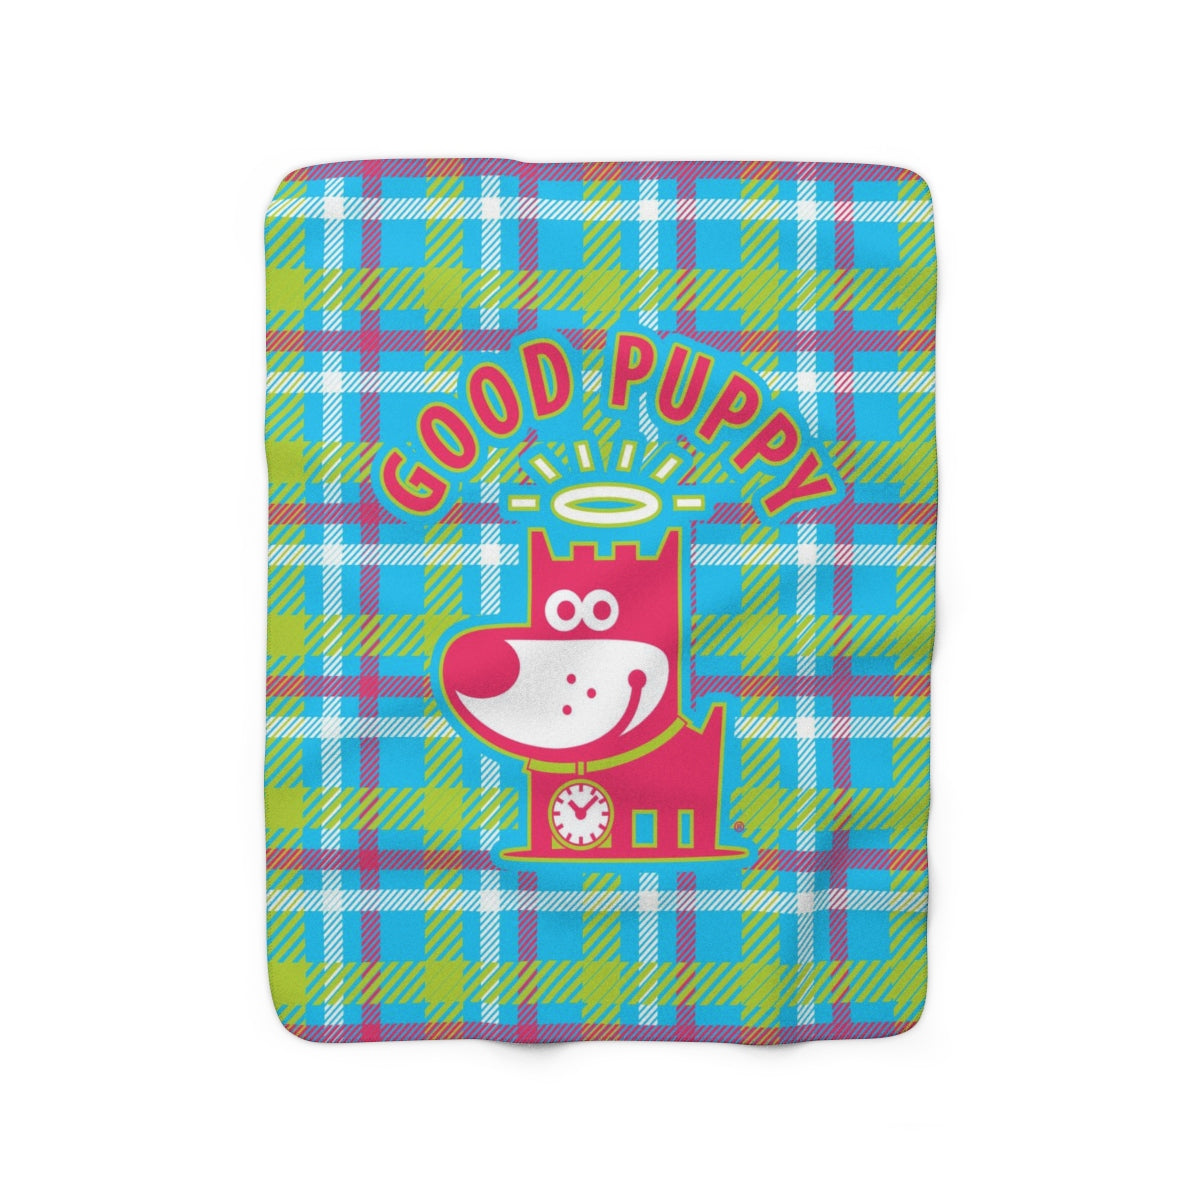 Good Puppy Plaid III Green . Sherpa Fleece Blanket